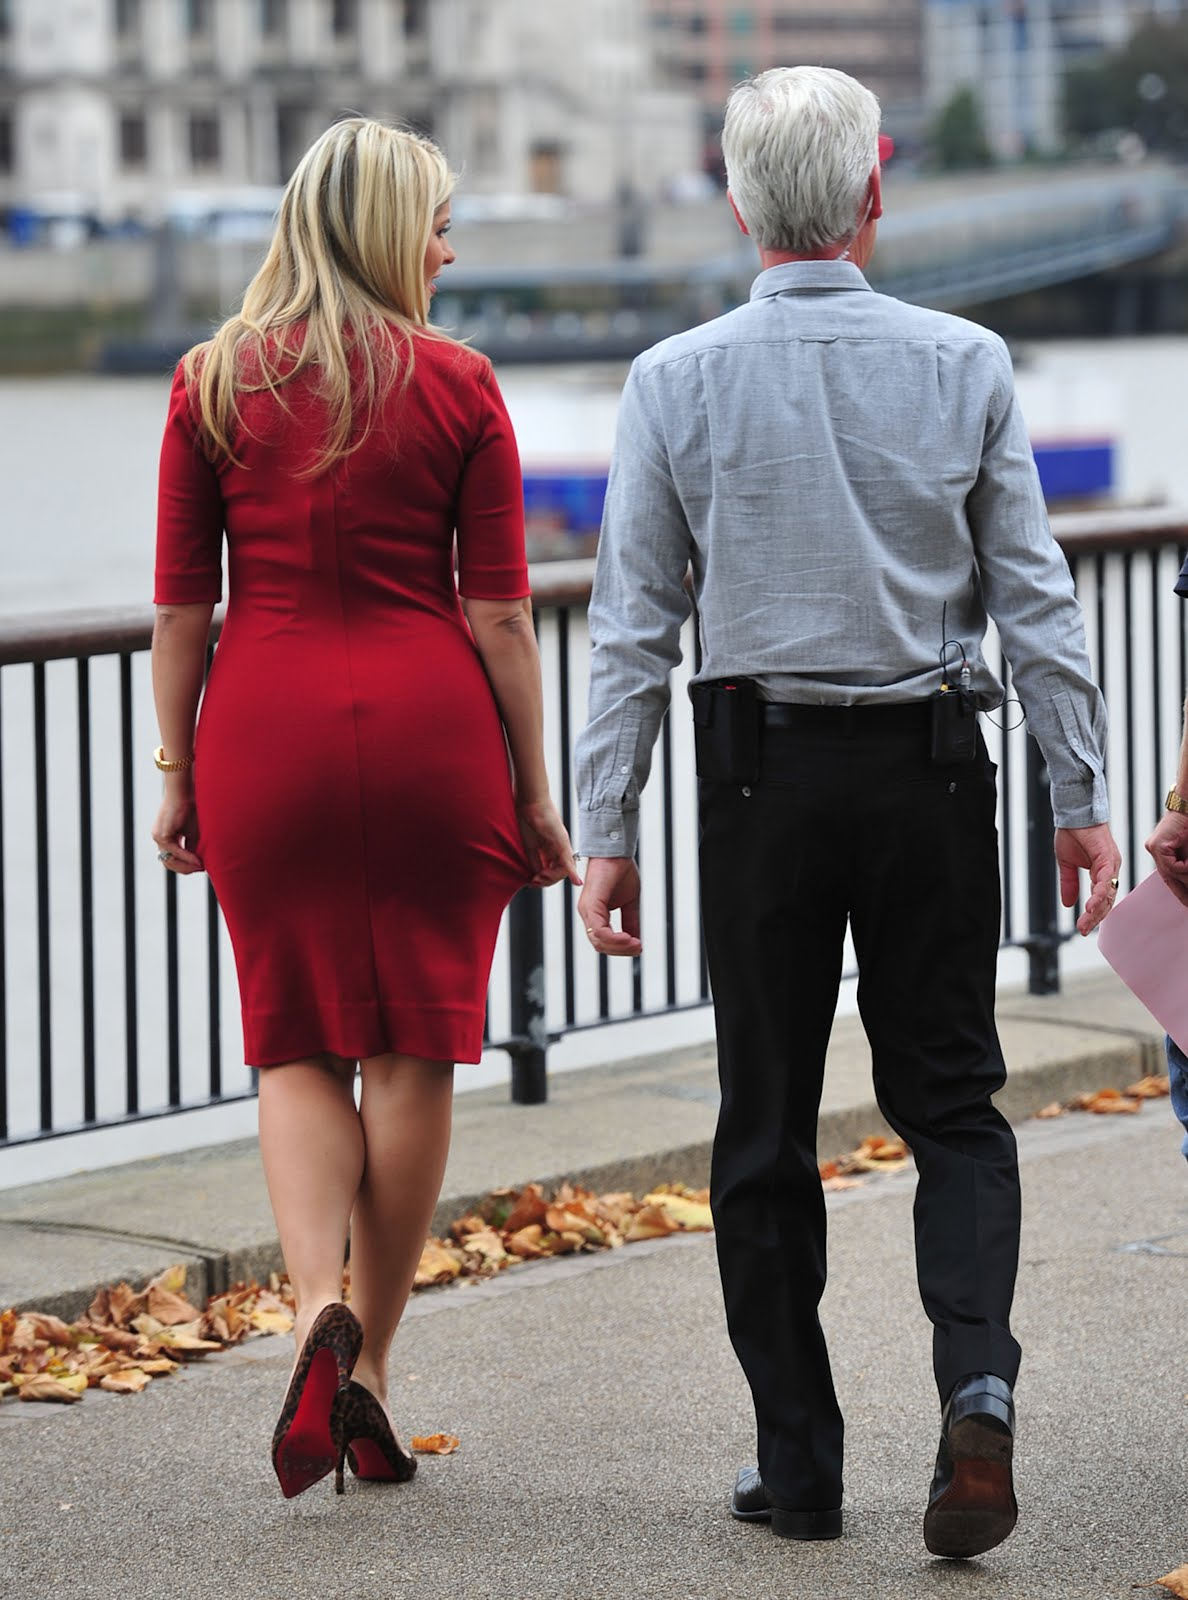 http://4.bp.blogspot.com/-xZCJmWbV3mM/TyKEmBoPtAI/AAAAAAAAIb4/qXI41z7xxS4/s1600/sploogeblog_holly_willoughby_minidress_ass_thismorning_01.jpg